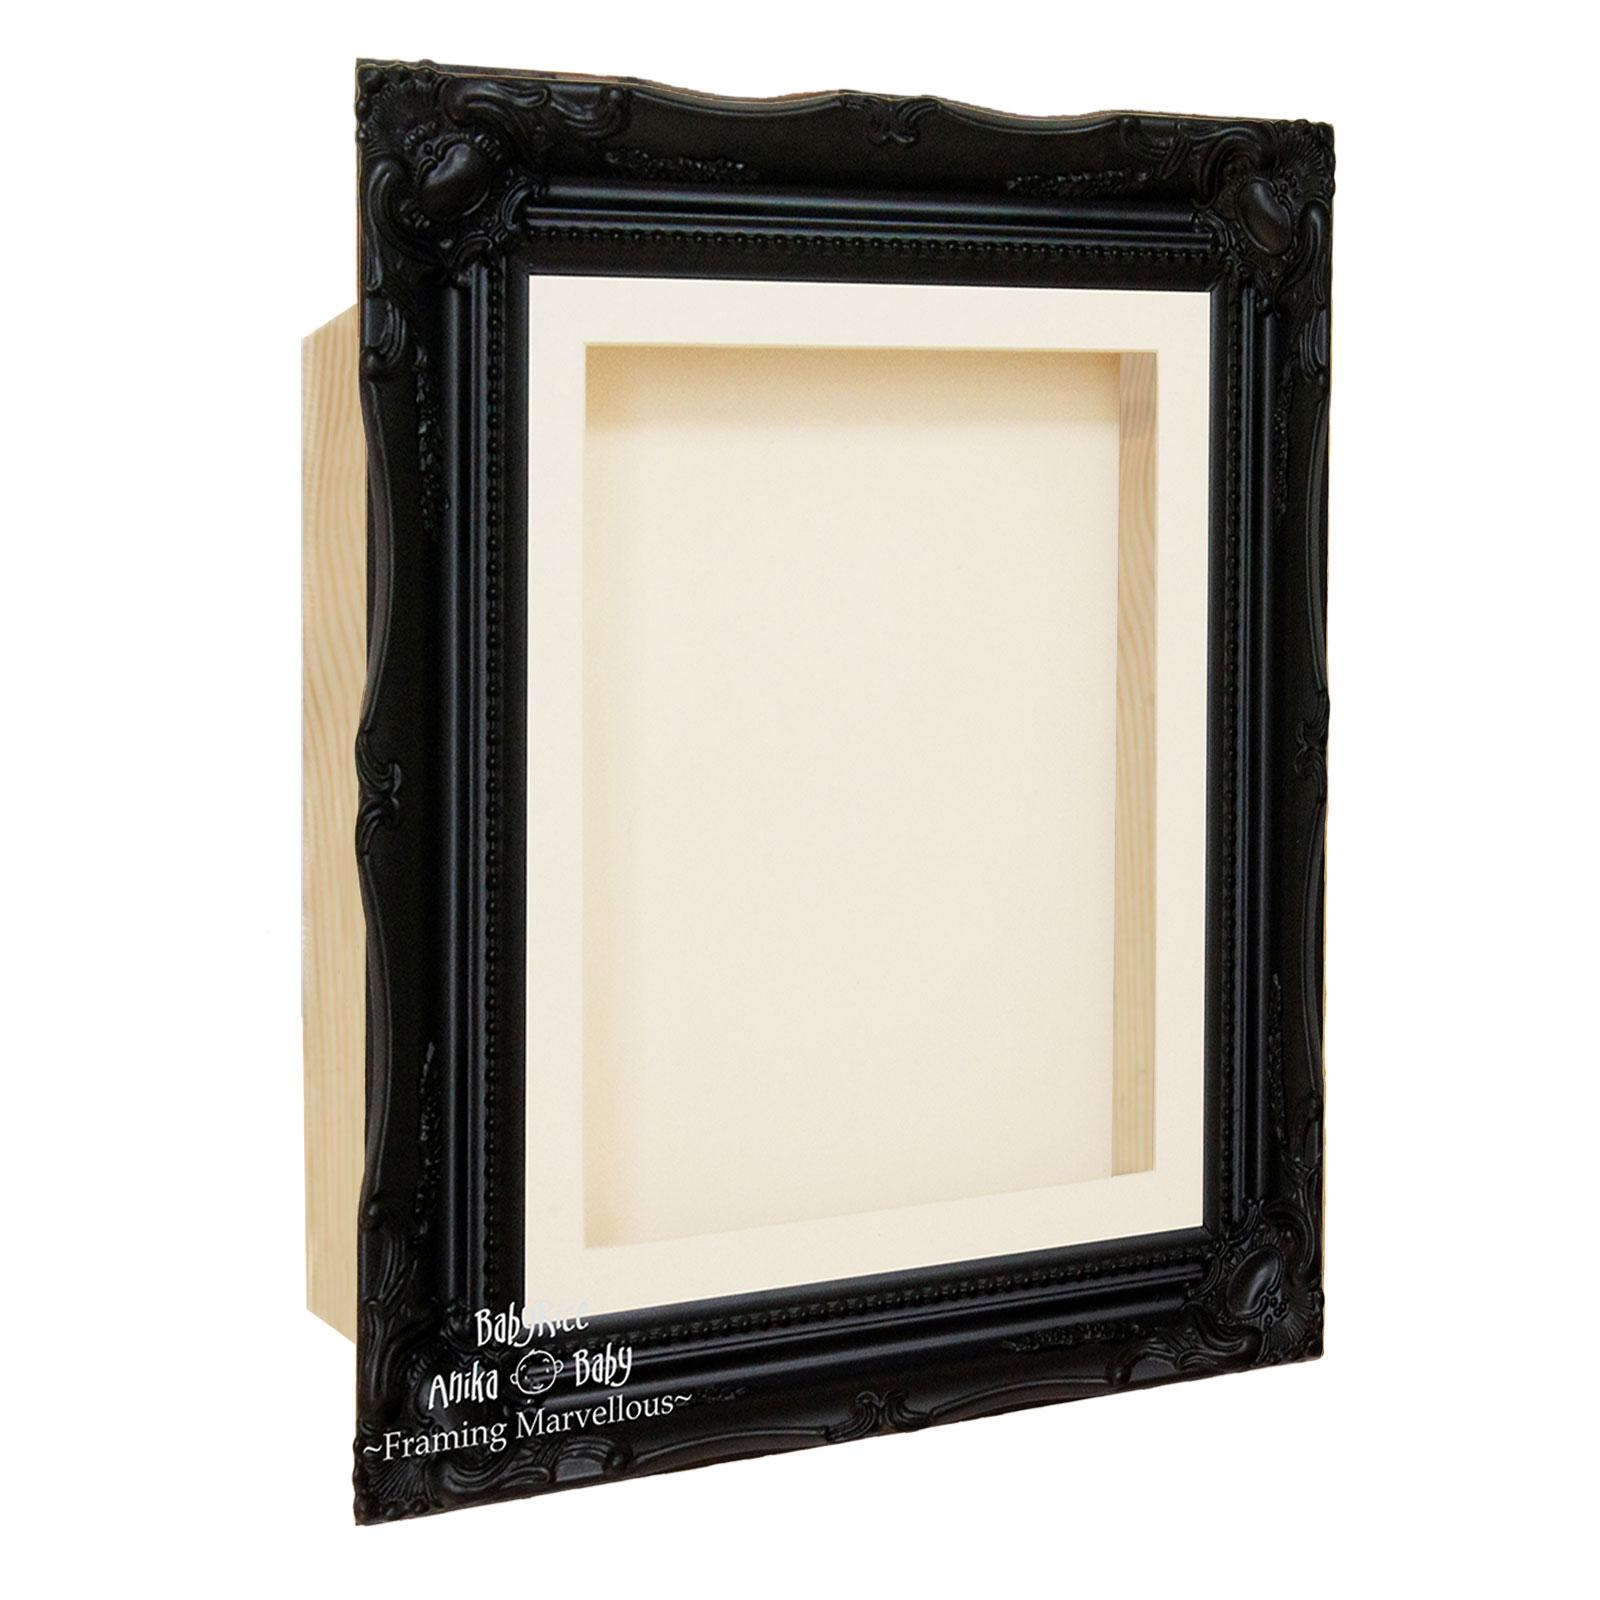 Ornate Black Swept Shadow Box Display Frame